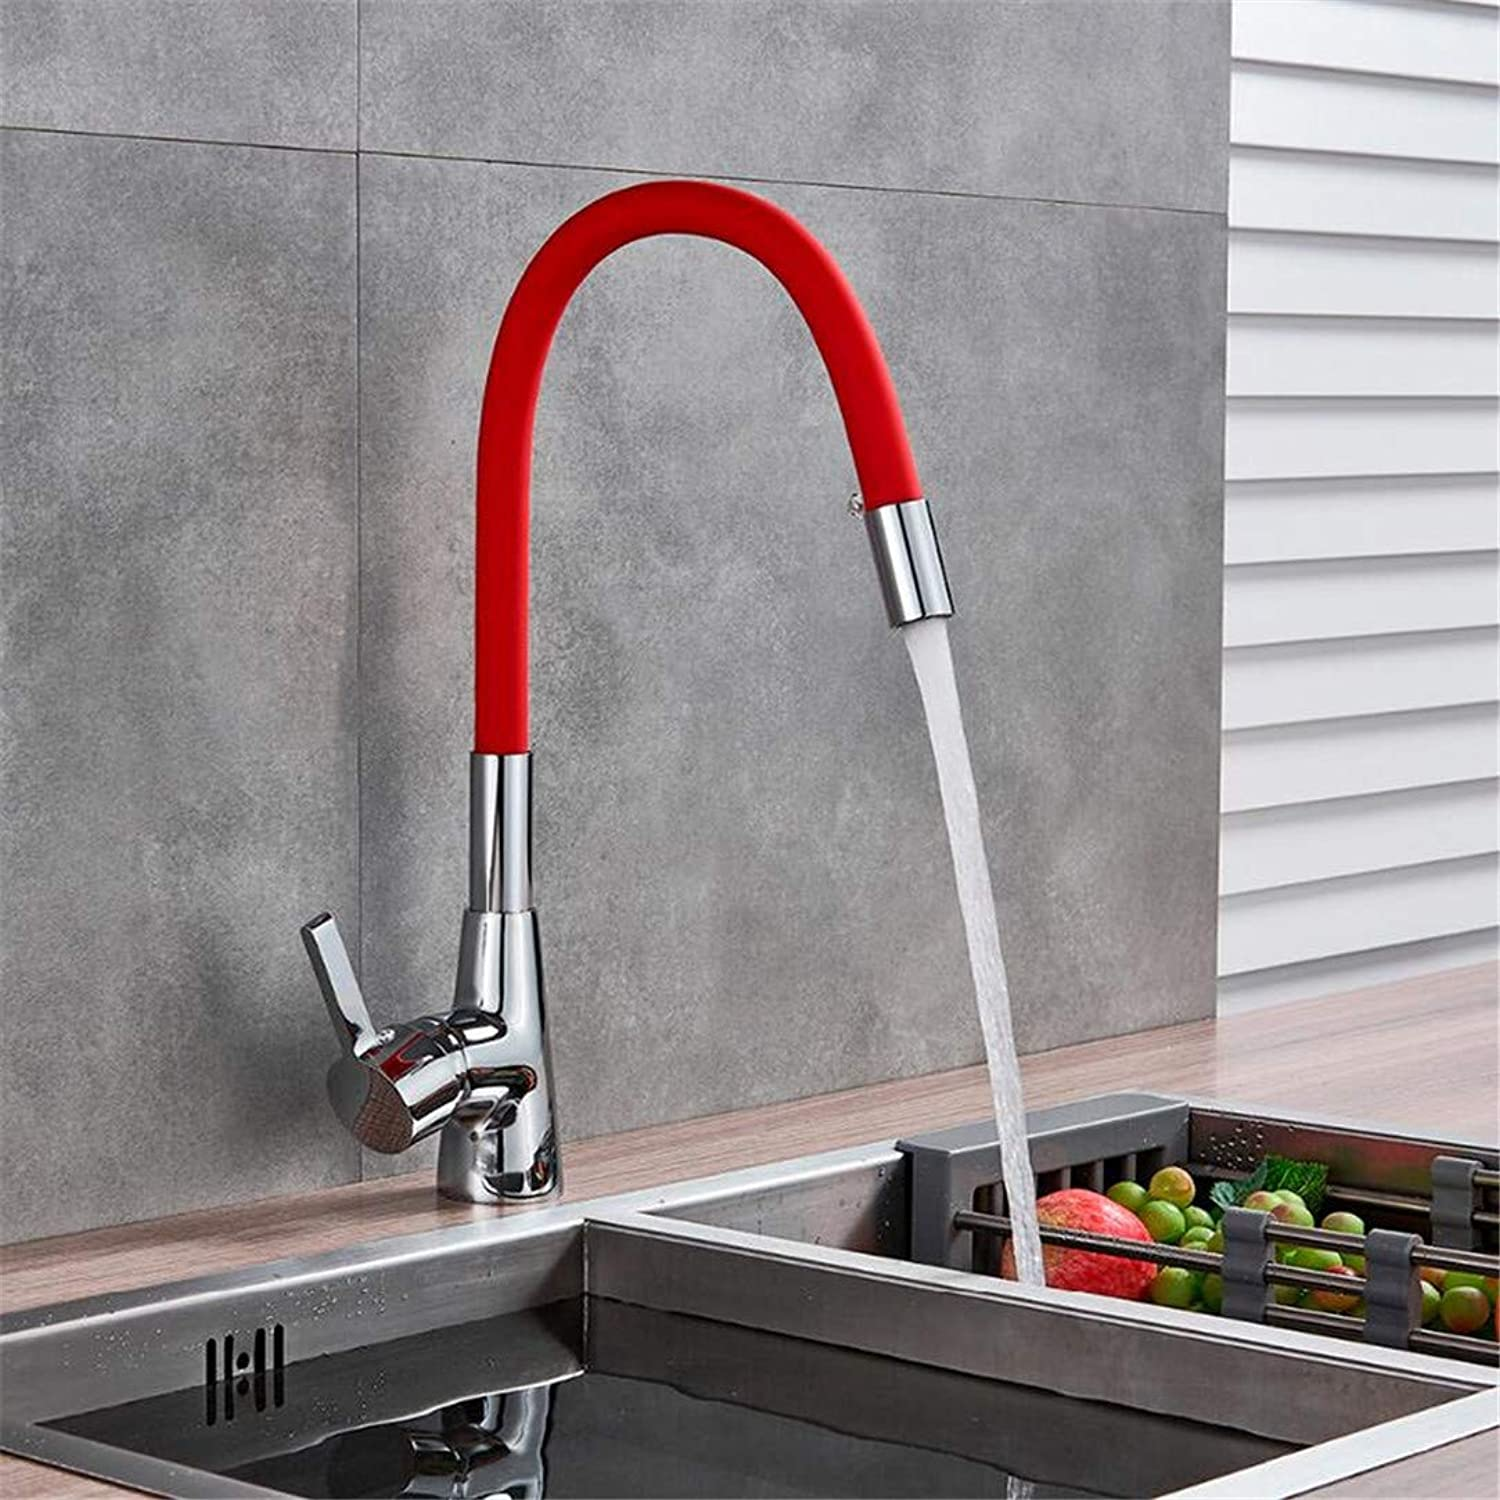 Faucet Washbasin Mixer Deck Mounted Kitchen Sink Faucet Single Hole Cold & Hot Sink Mixer Tap colorful Flexiable Hose Kitchen Sink Tap